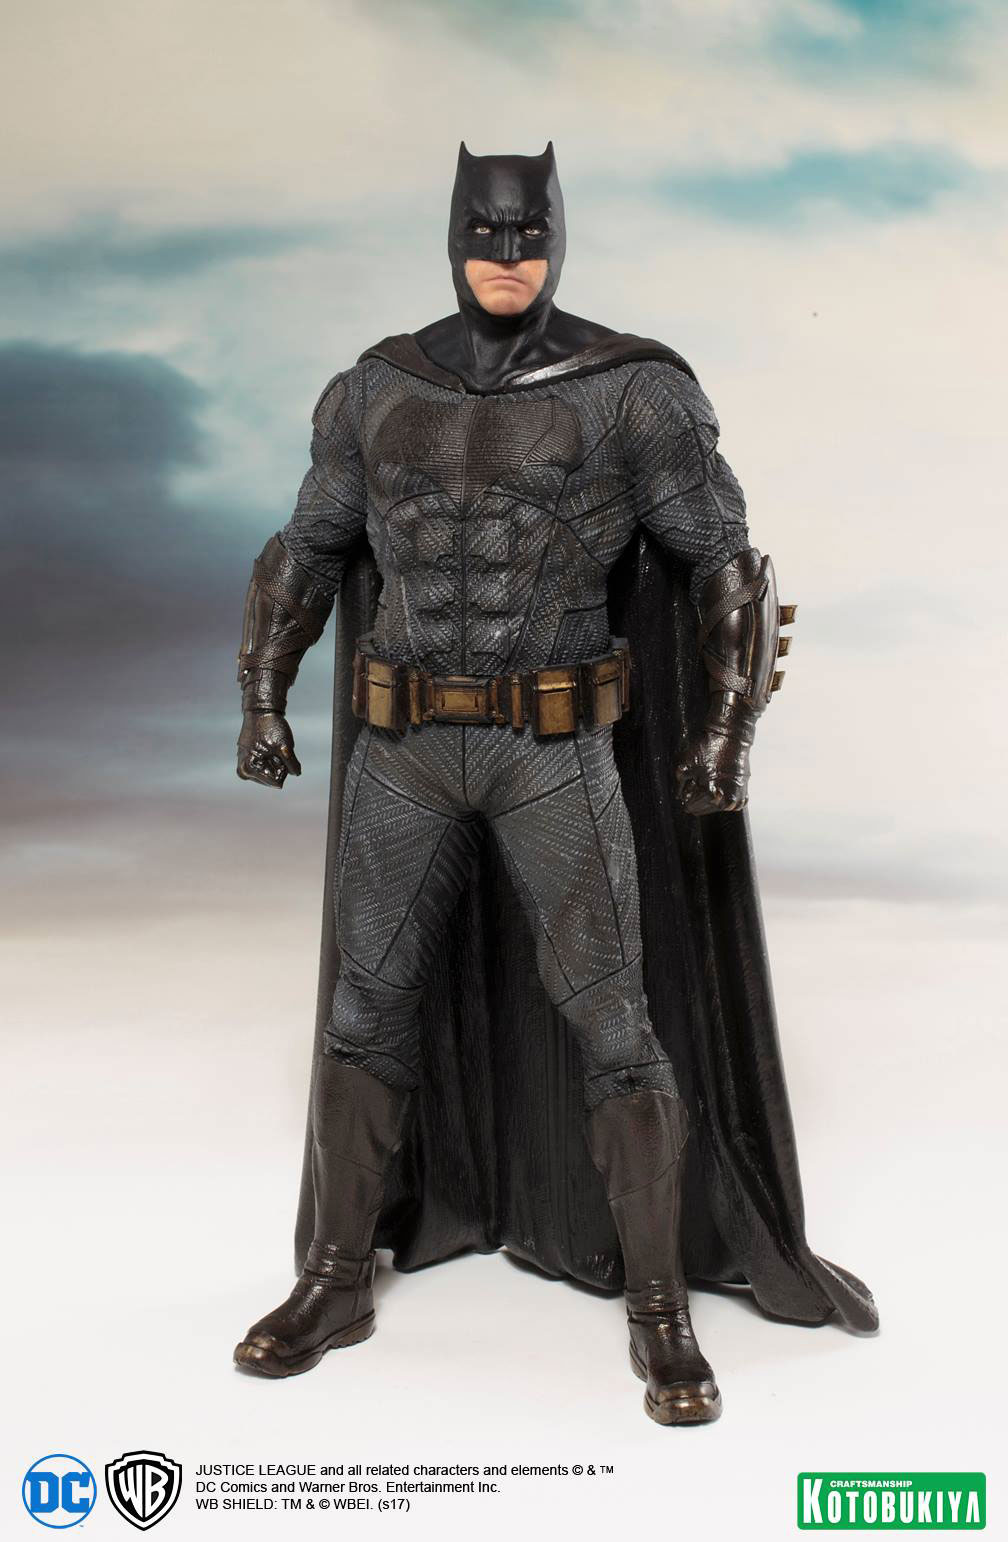 kotobukiya-justice-league-batman-statue